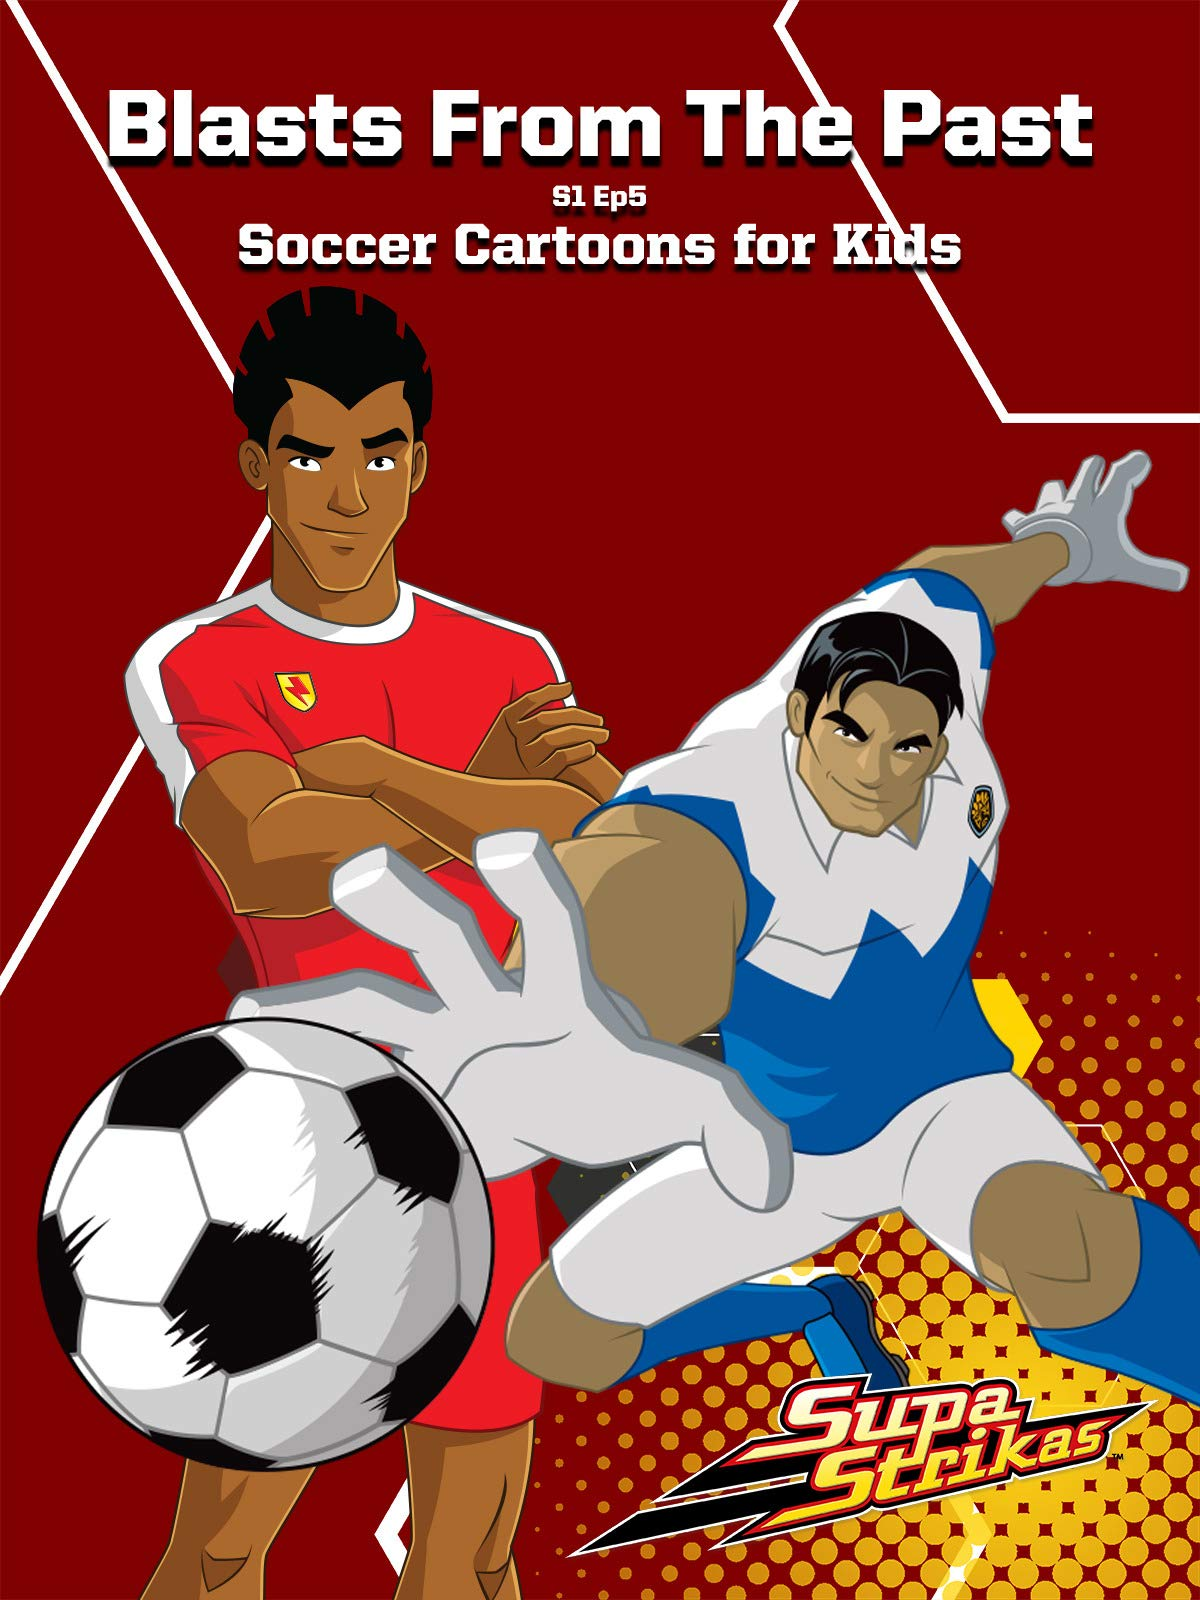 Blasts From The Past - S1 Ep5 - Supa Strikas - Soccer Cartoons for Kids